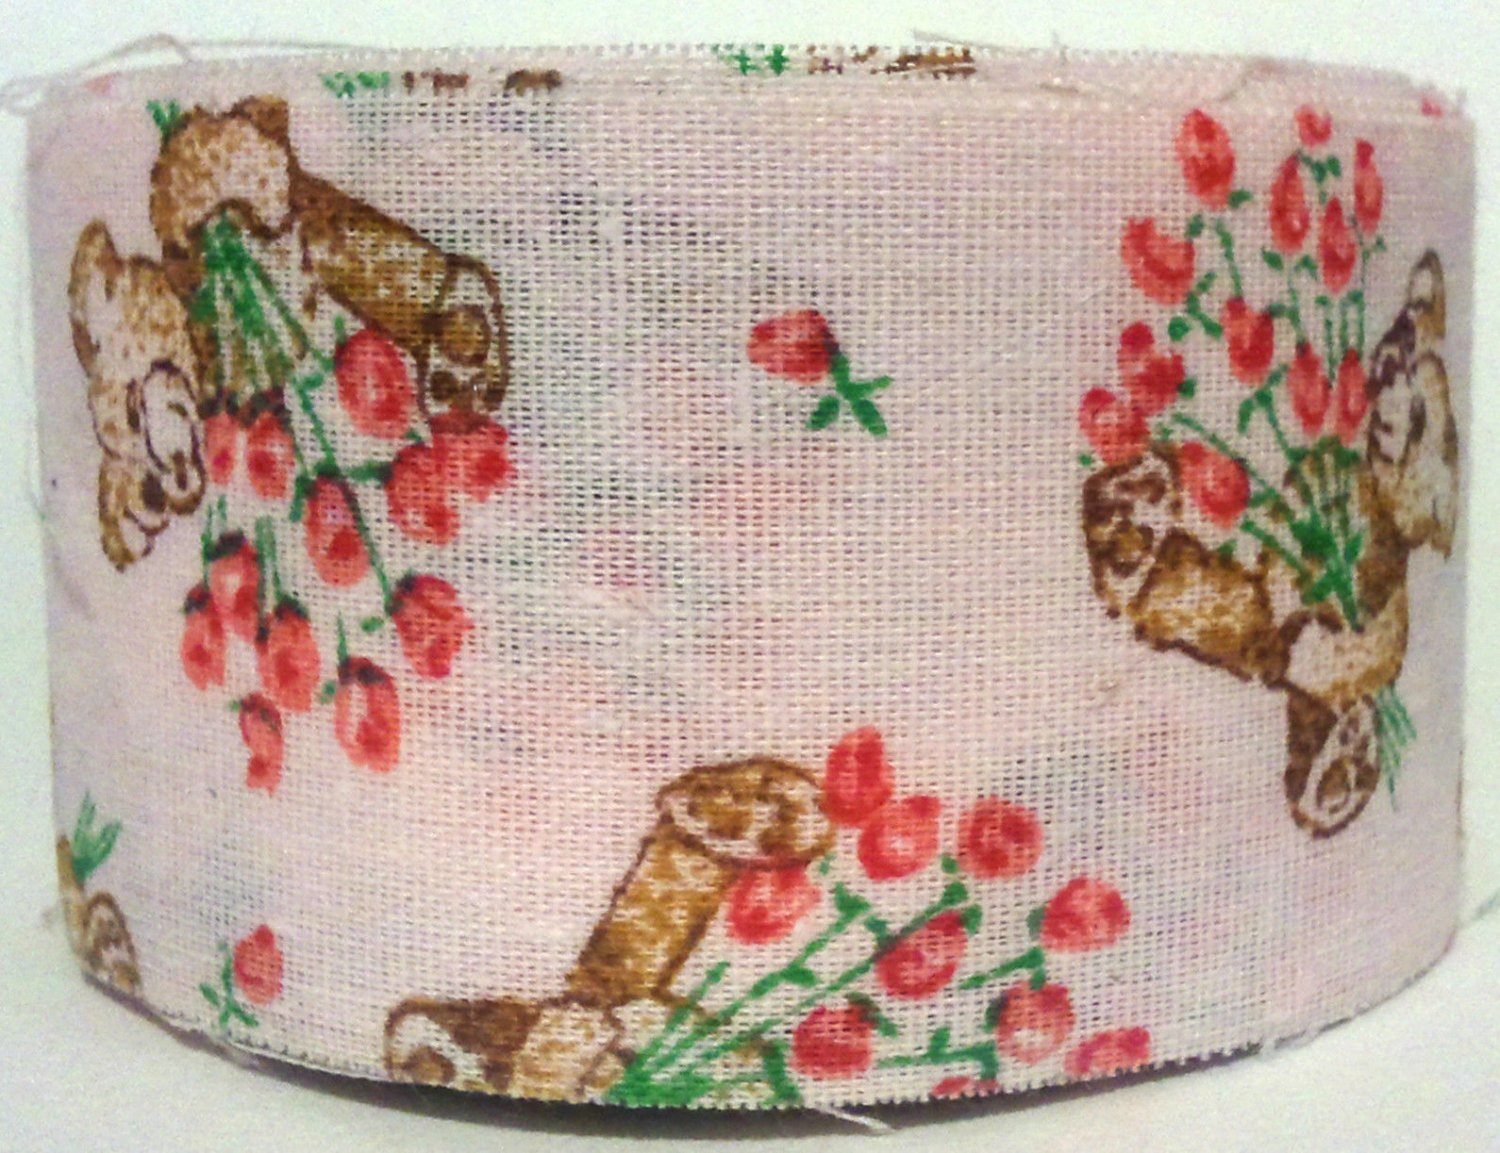 Cotton Fabric Ribbon Pink Teddy Bears Roses 1-3/8 inches 6y Unfinished